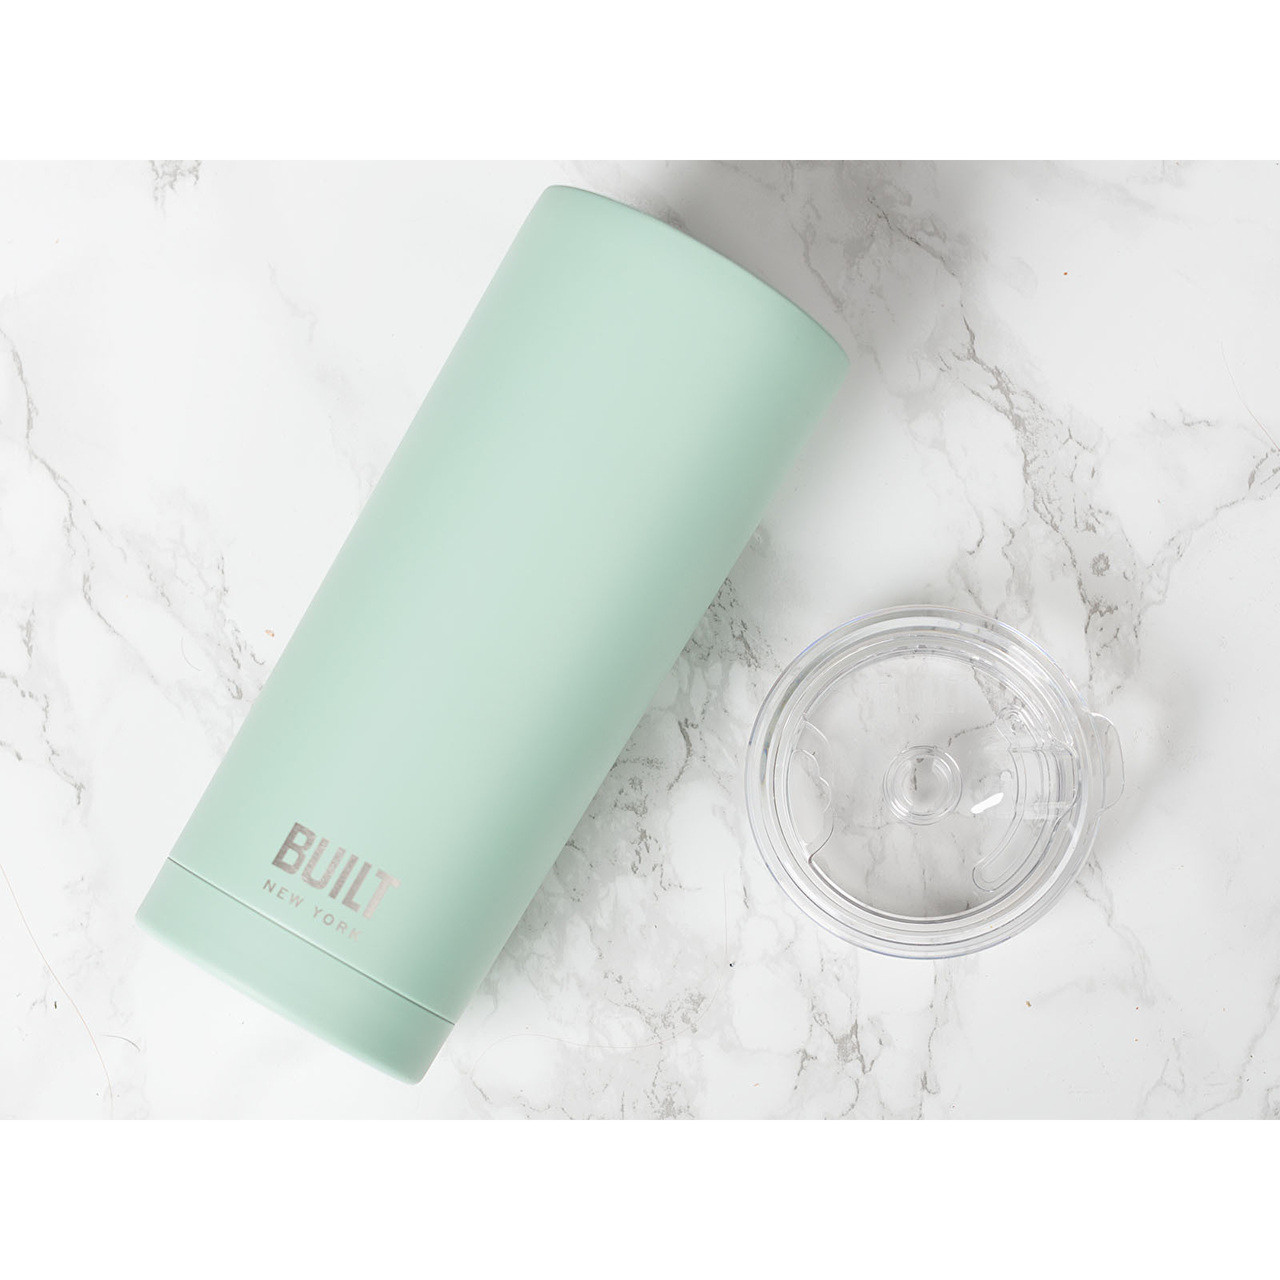 Built Double Walled Stainless Steel Tumbler - 20oz Mint Green